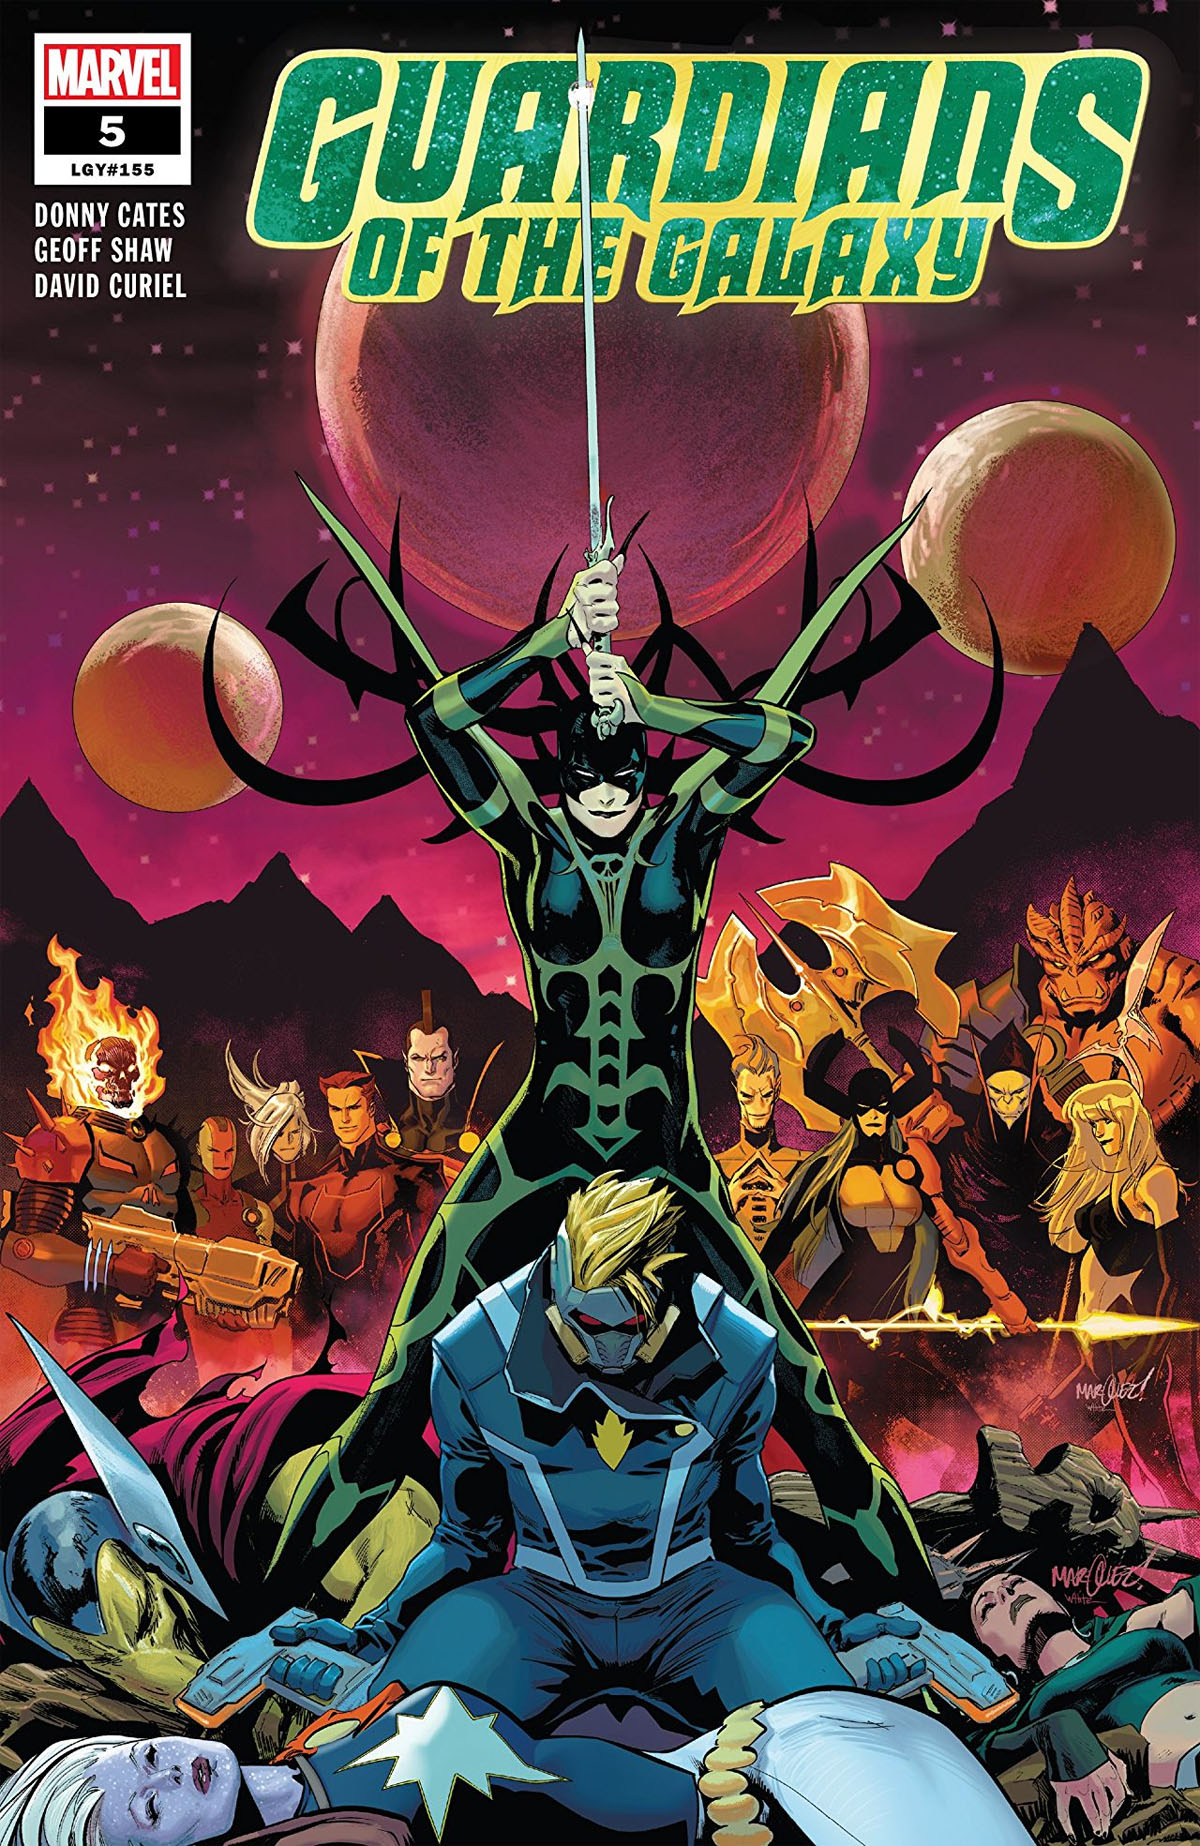 Guardians of the Galaxy #5 cover